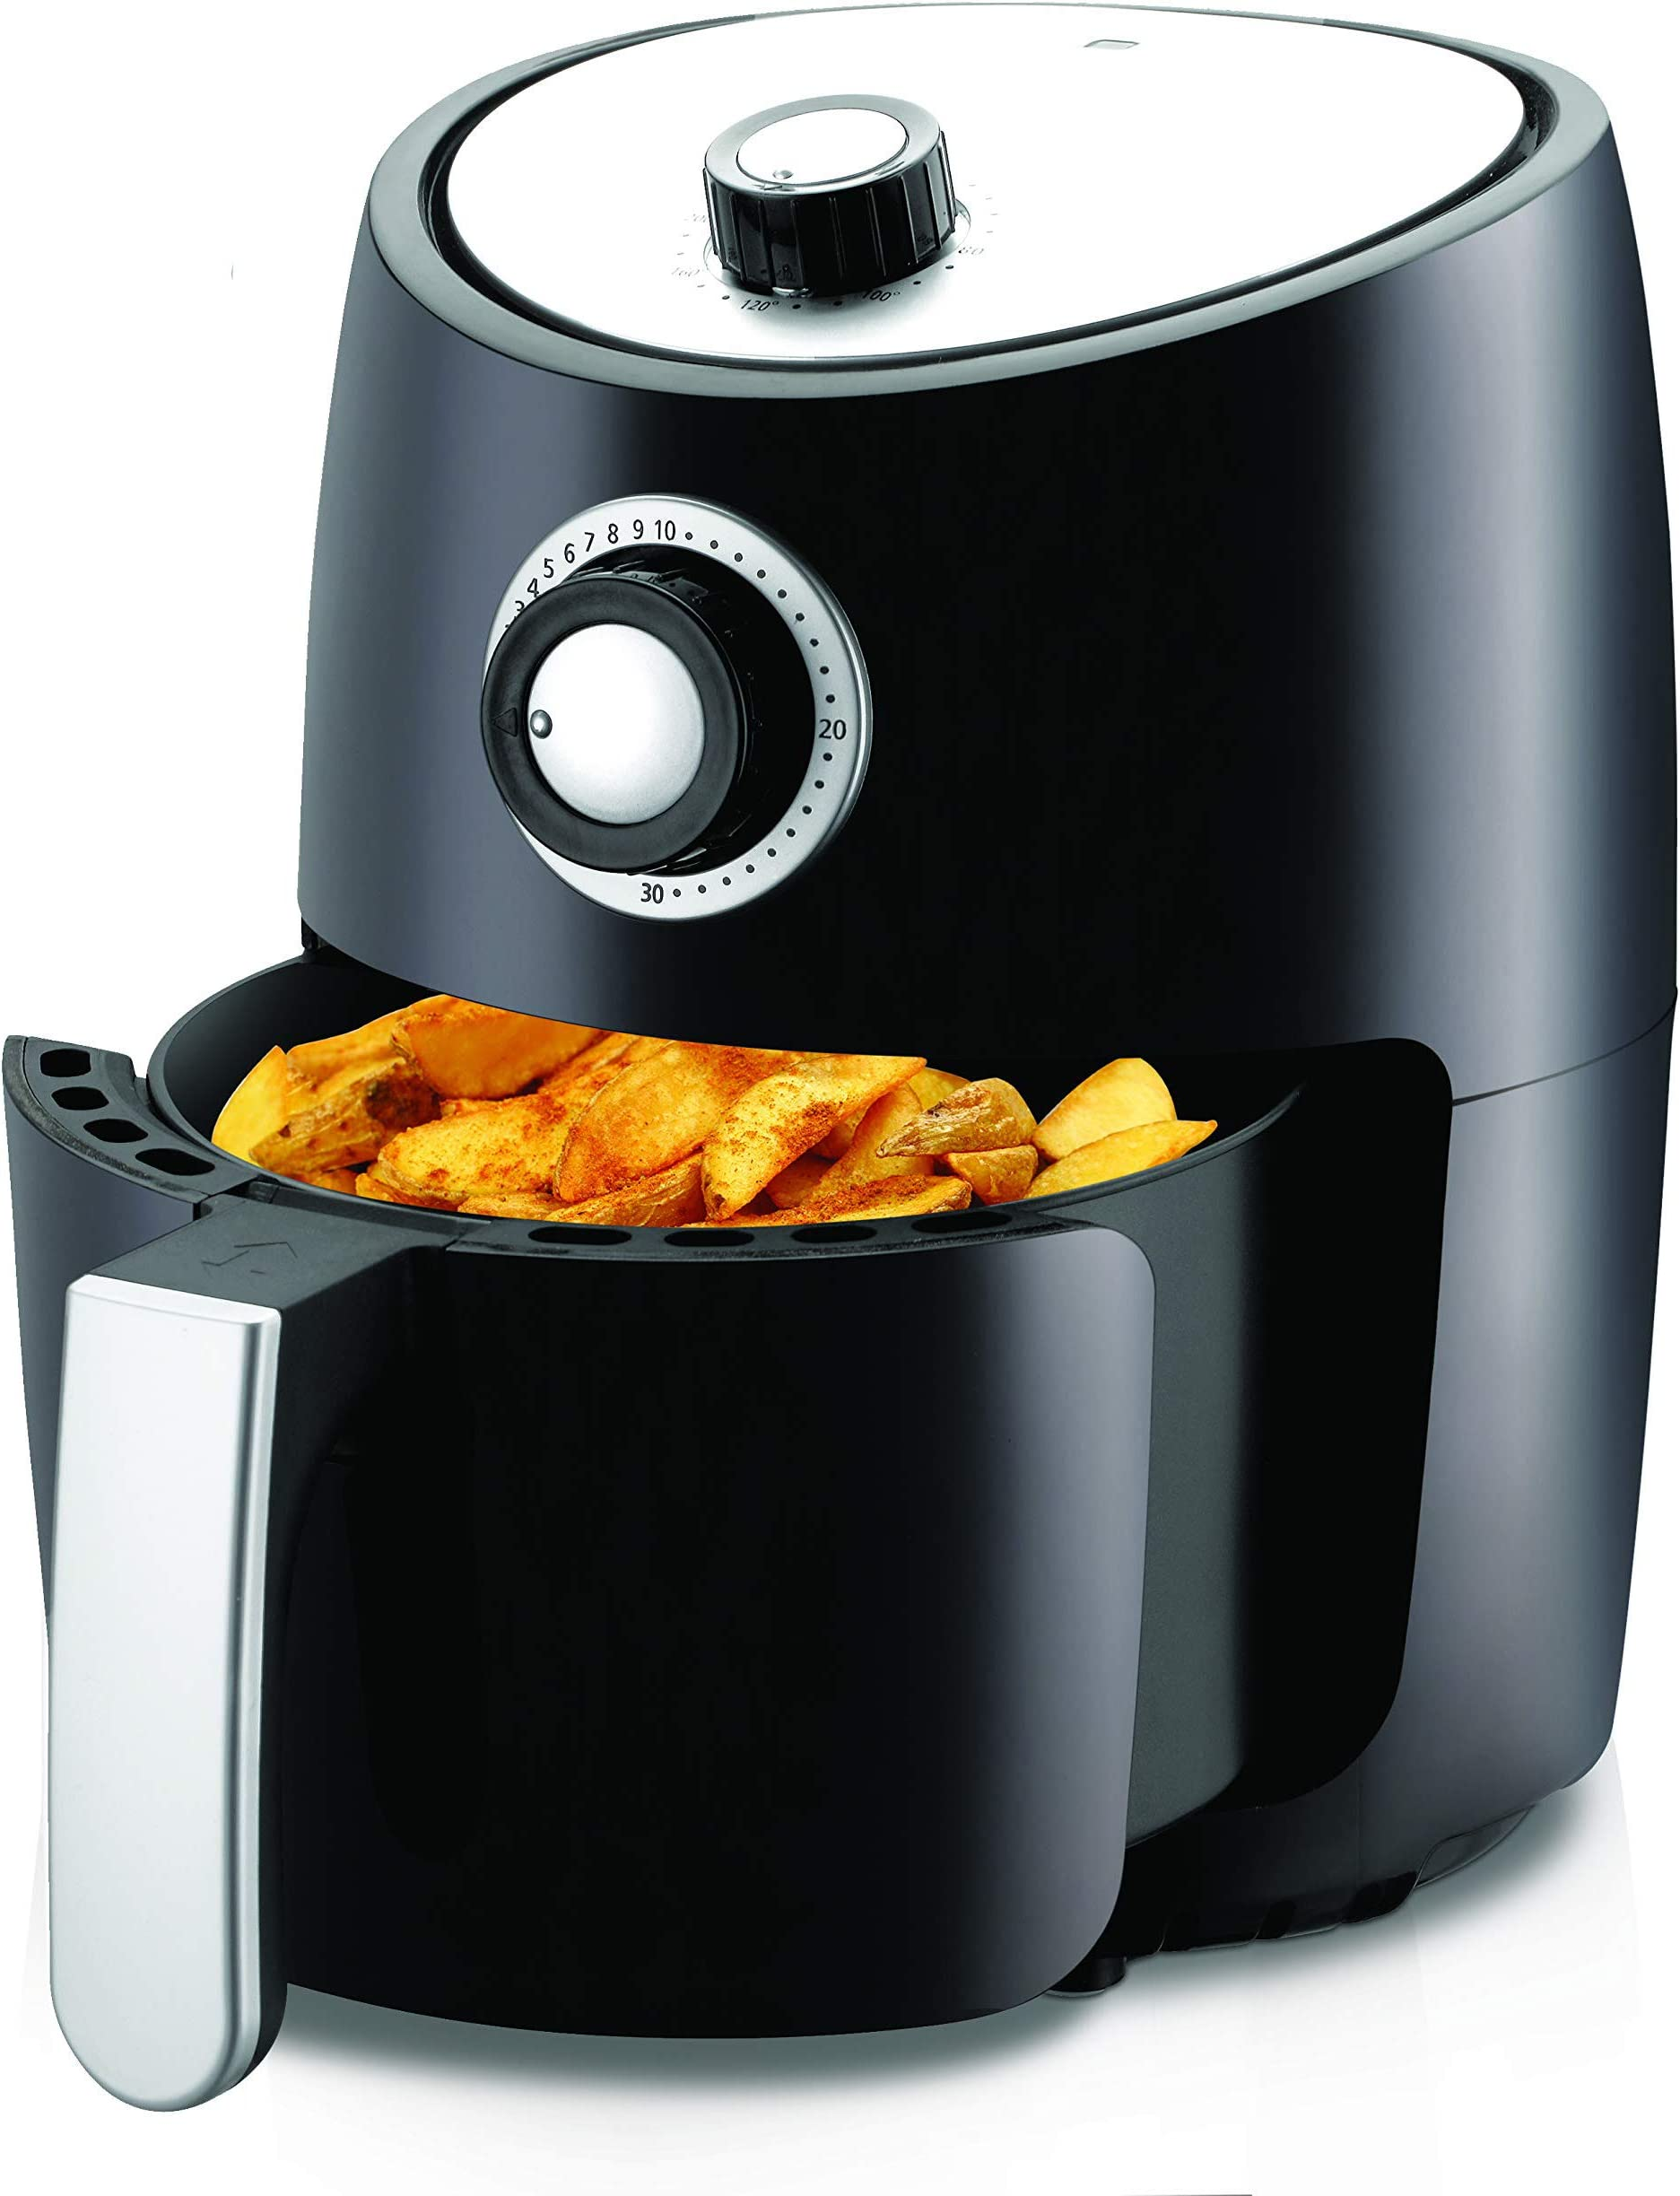 NutriChef, Ro Oven 2 Quart-1000w Power Oilless Dry Machine Large Capacity Family Size Air Fryer Removable Deep Non-stick Teflon Fry Basket, Roasting Plate PKAIR, avarage, Black